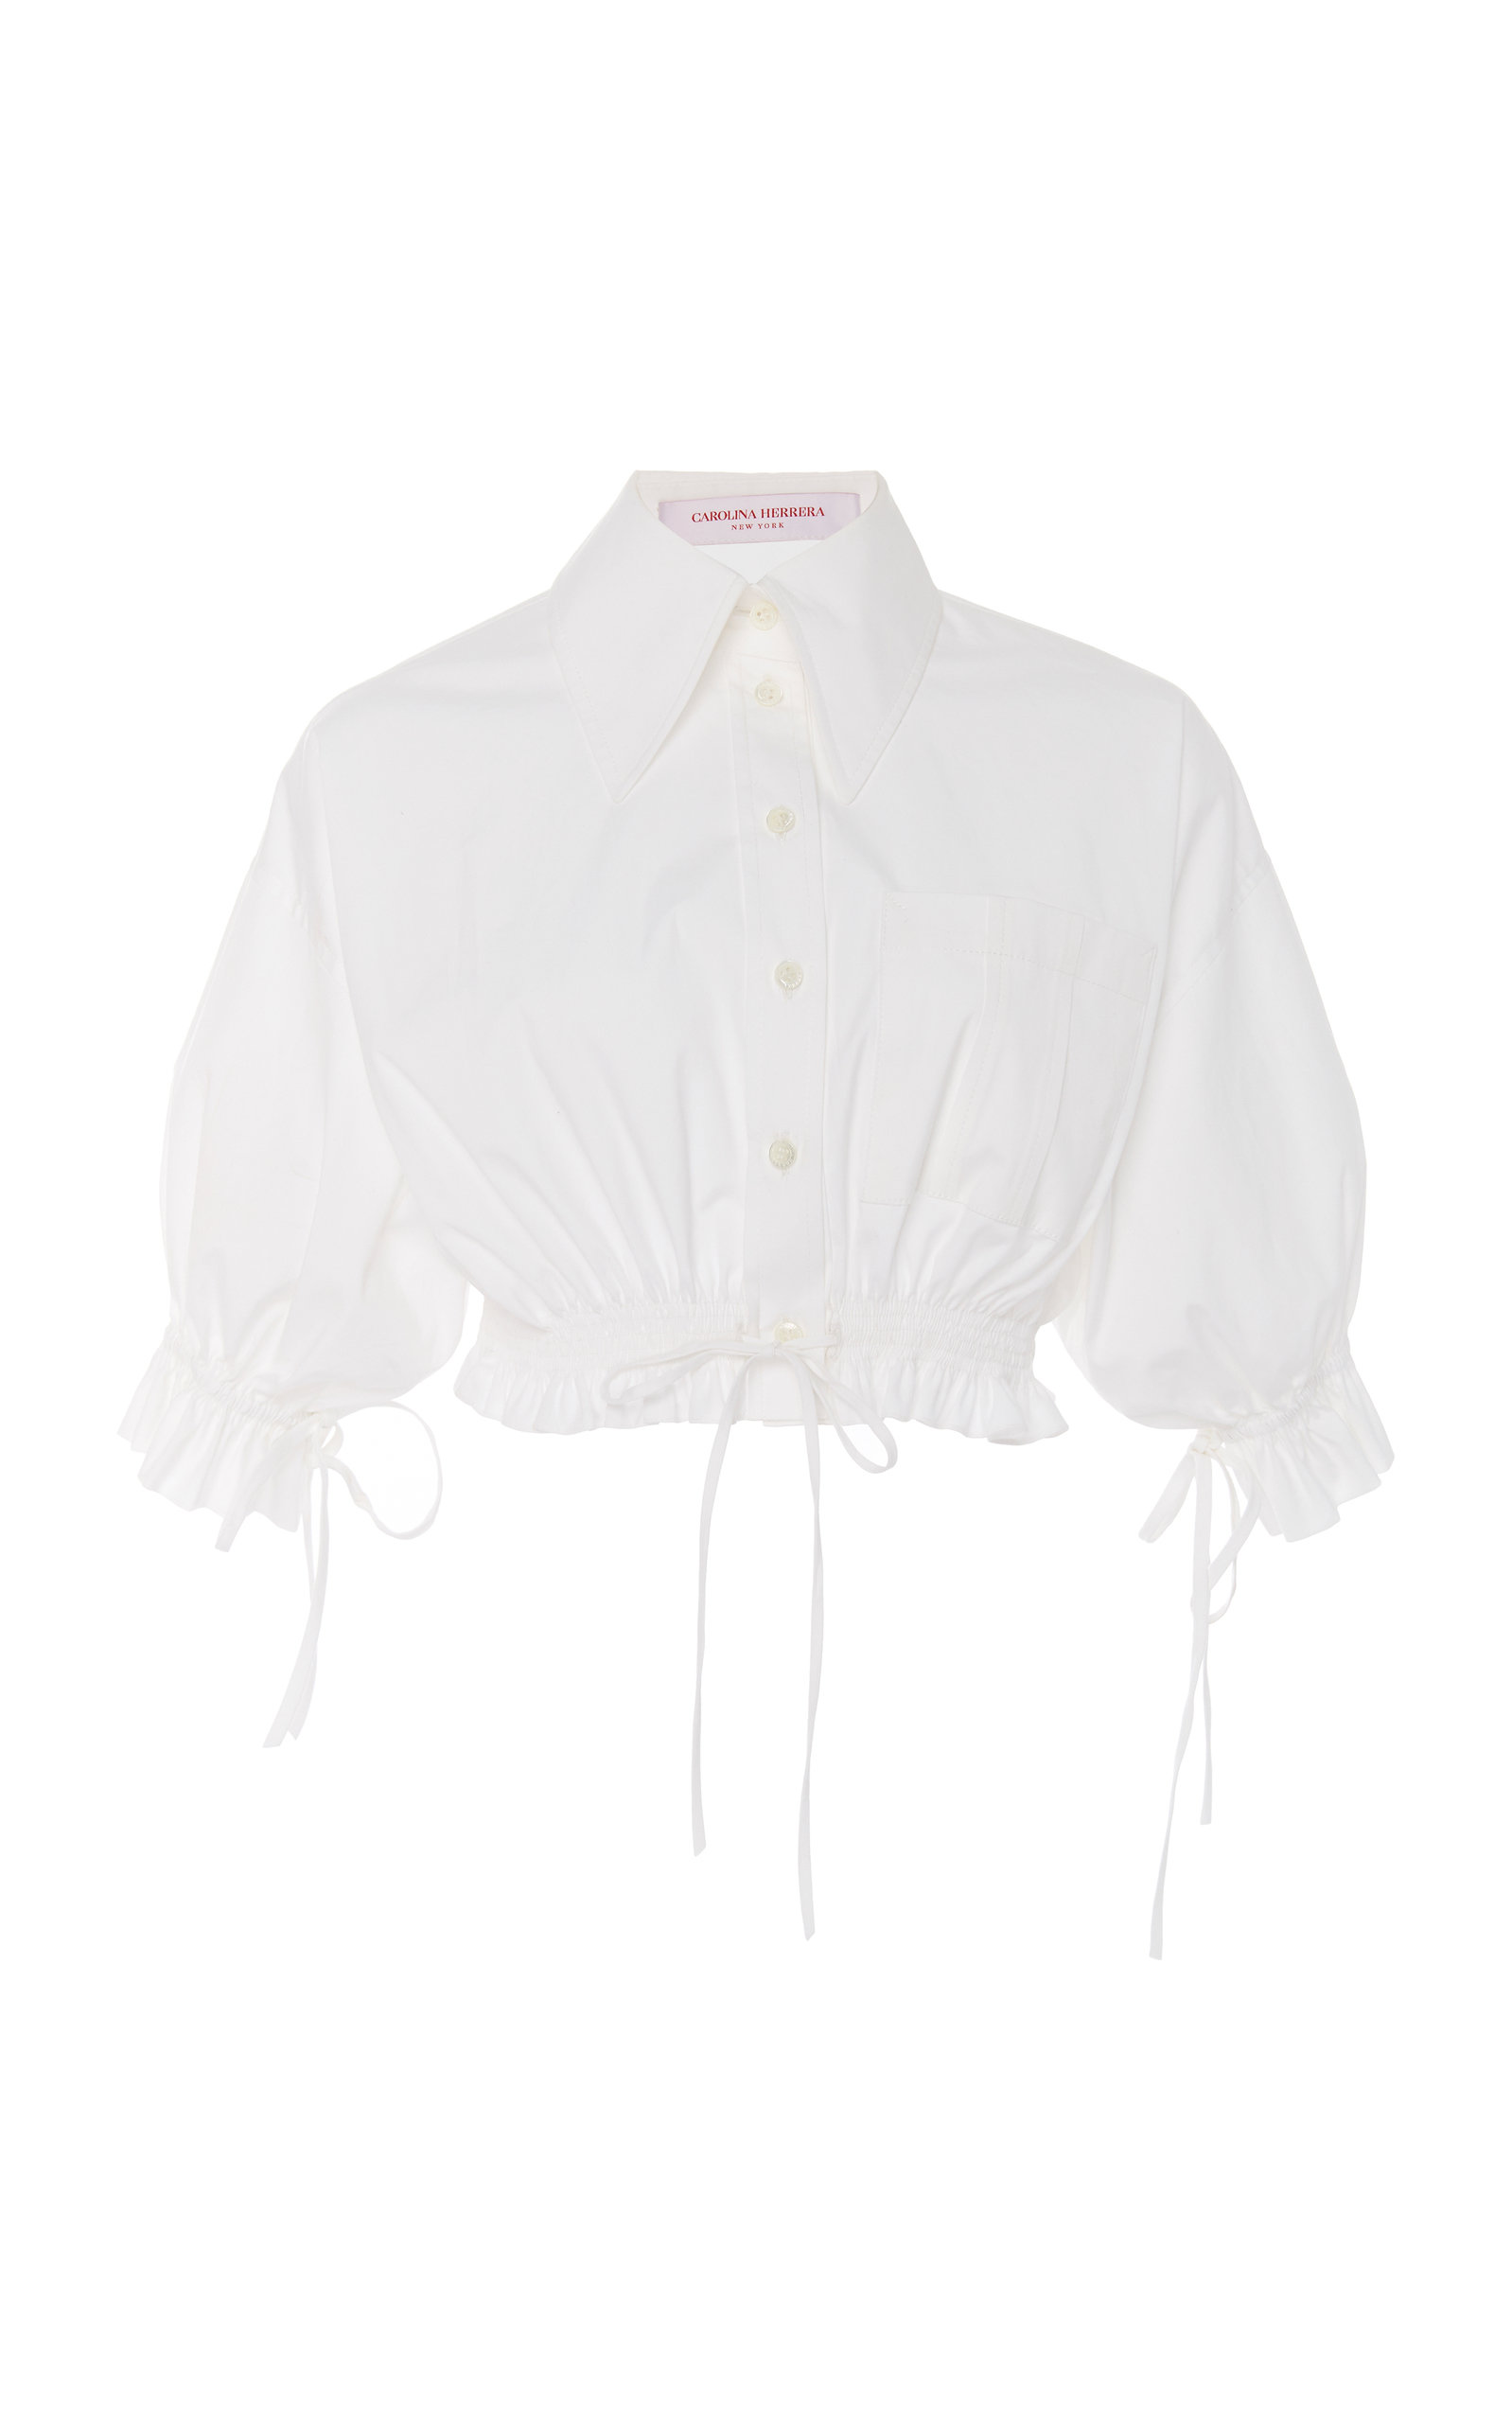 Carolina Herrera SELF-TIE COTTON-BLEND TOP